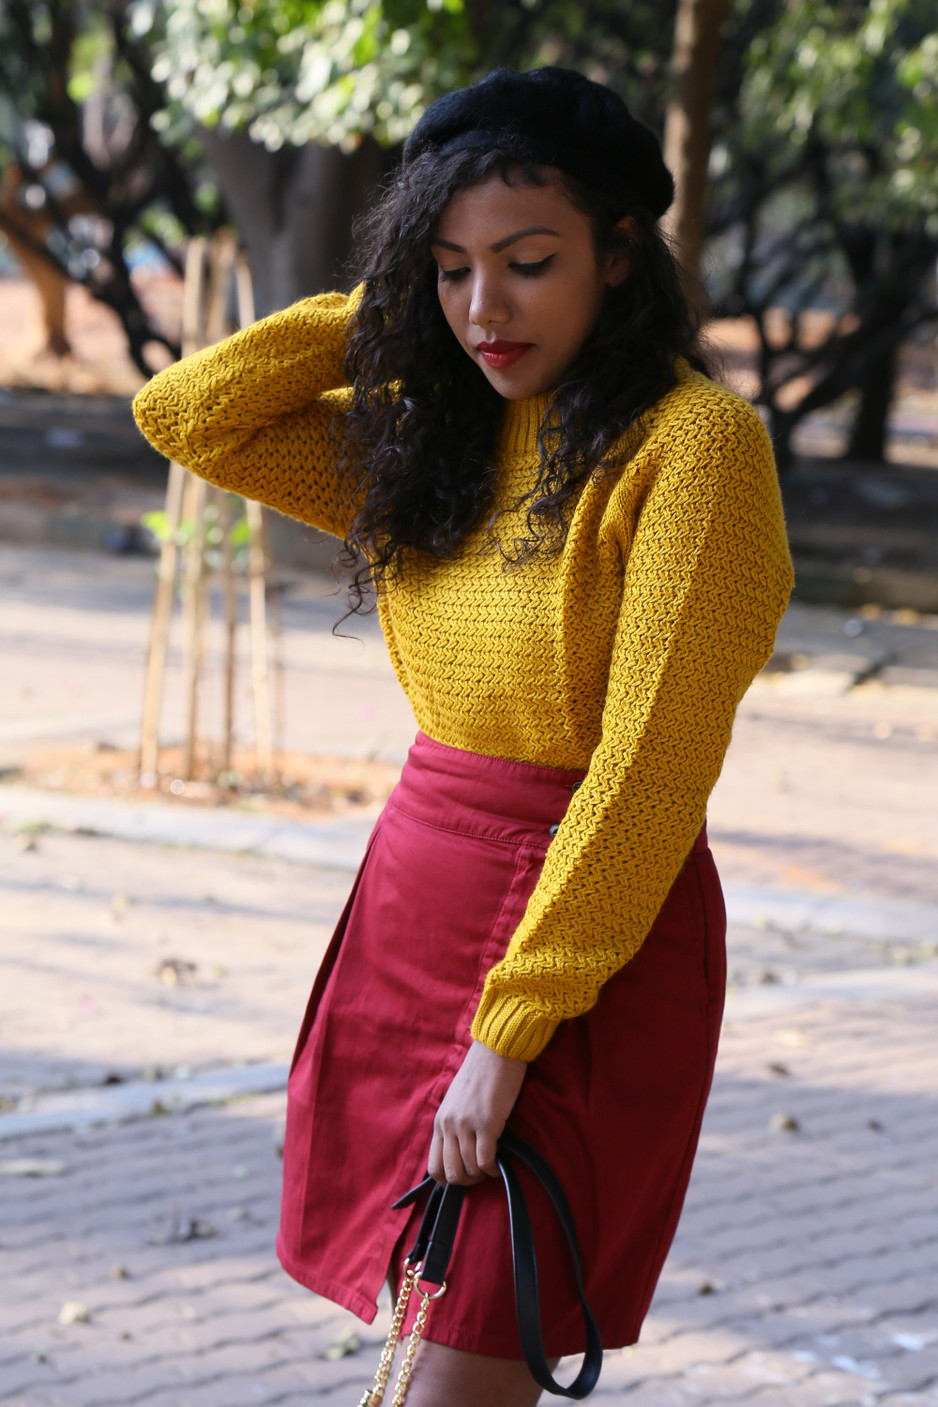 Caramel Knits and Compassion